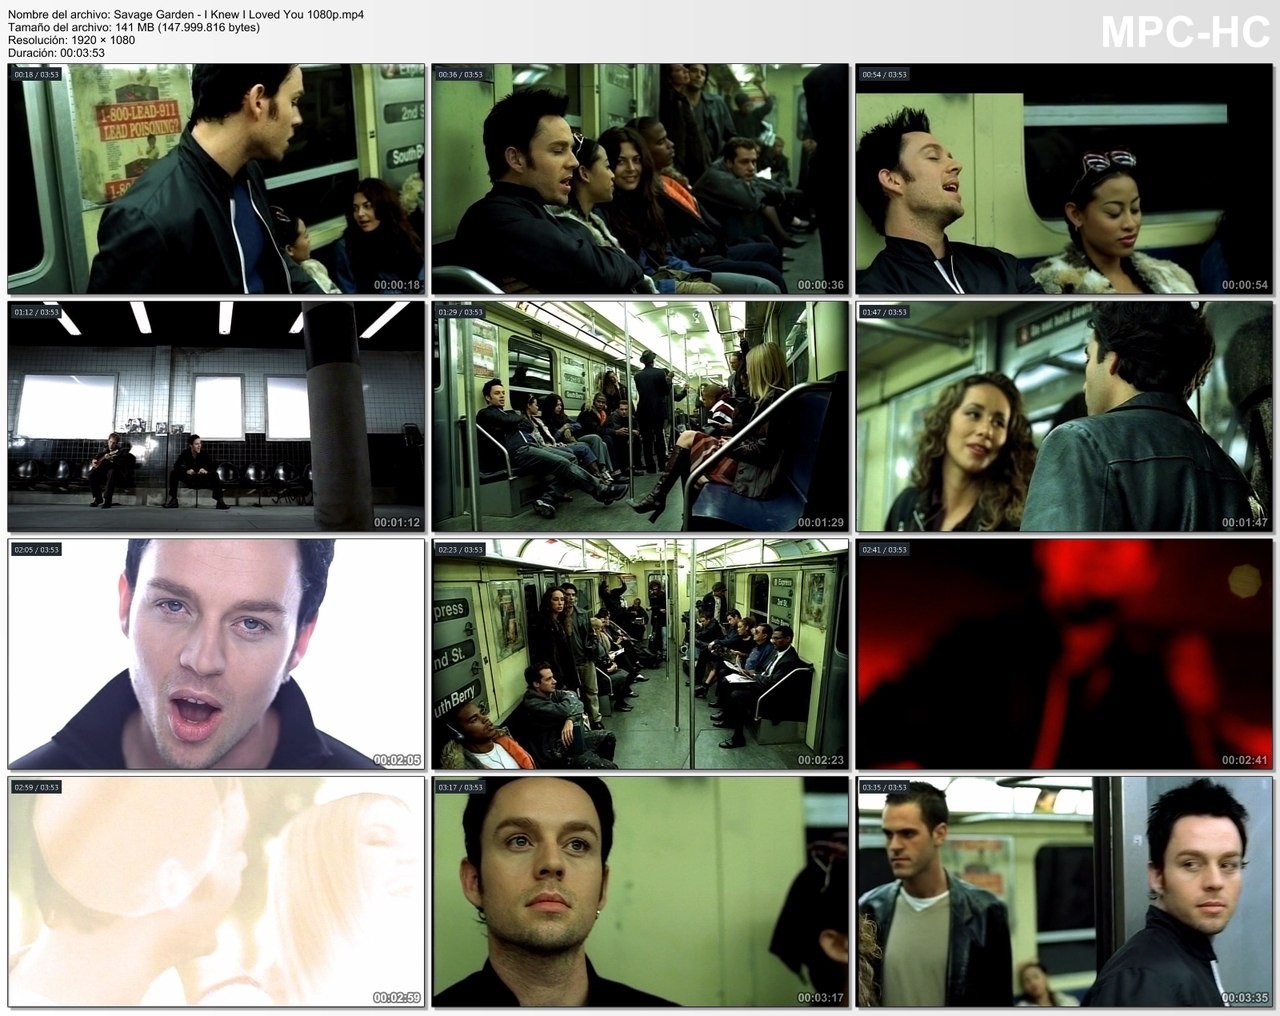 Savage garden i knew i loved you 1080p sharemania us for I knew i loved you by savage garden